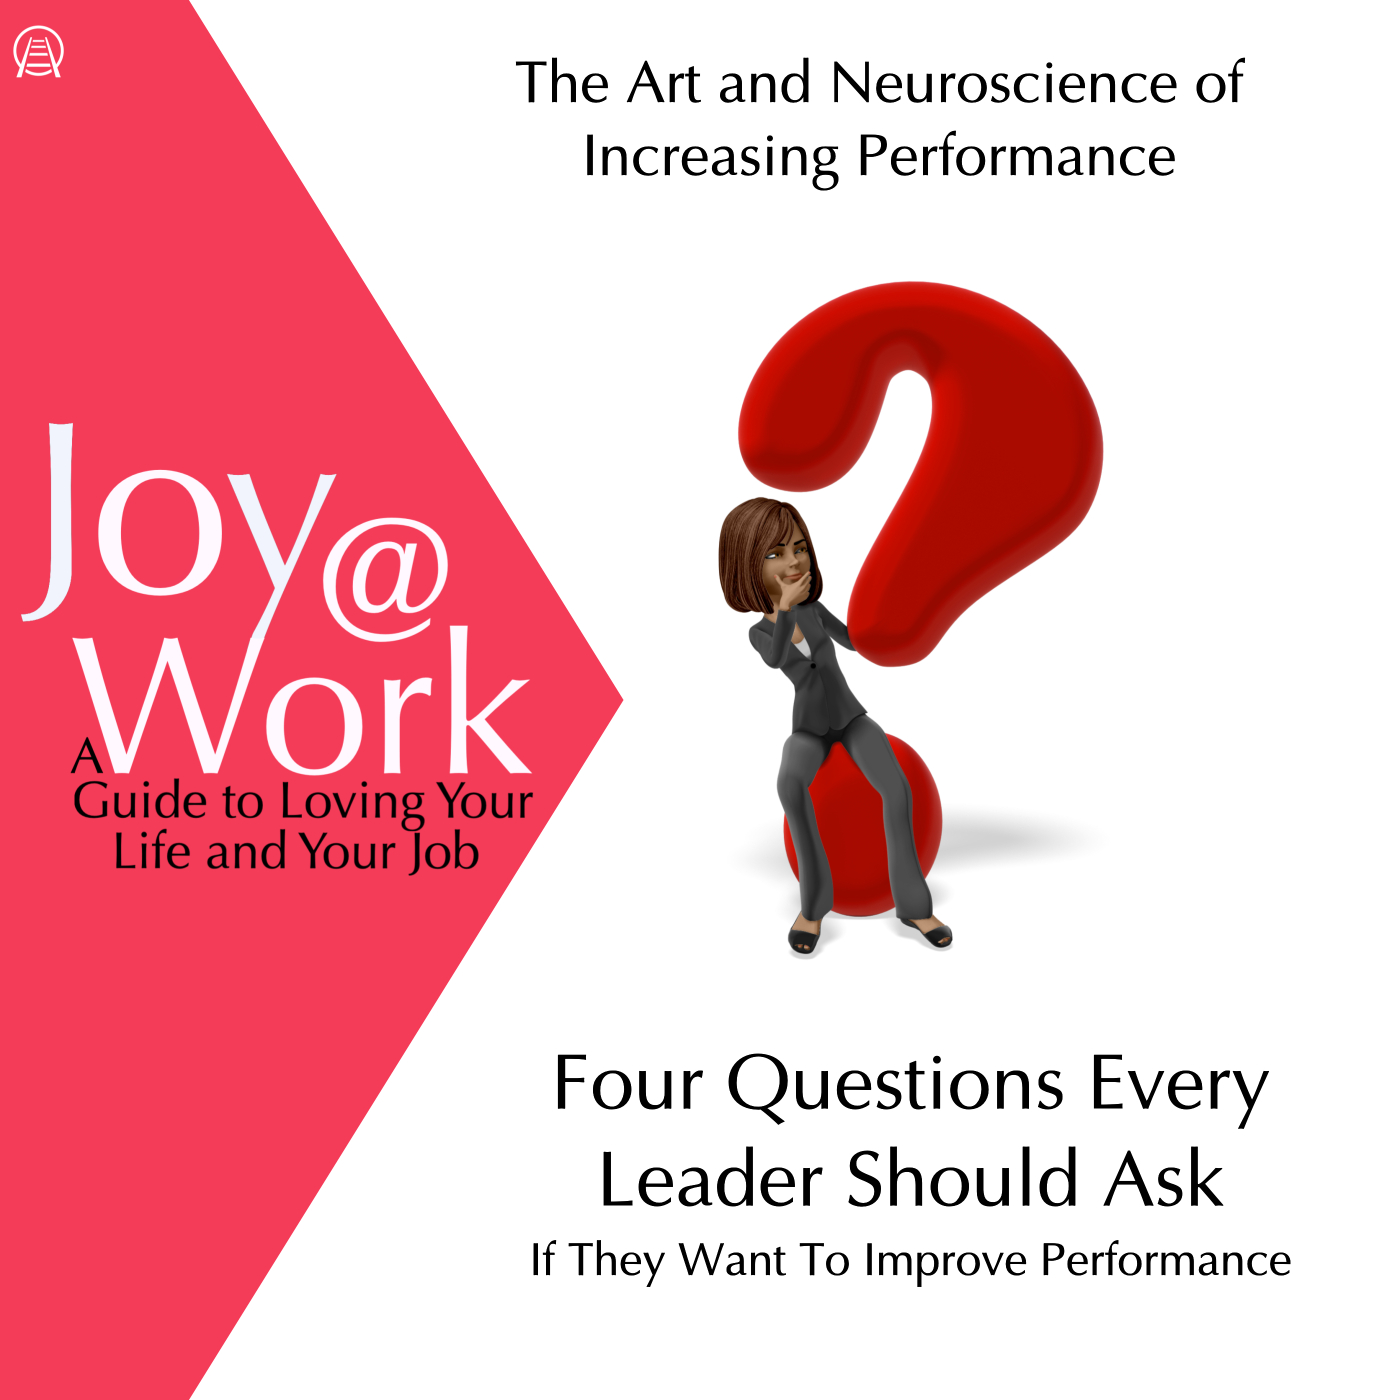 Four Questions Every Leader Should Ask (If They Want To Improve Performance)